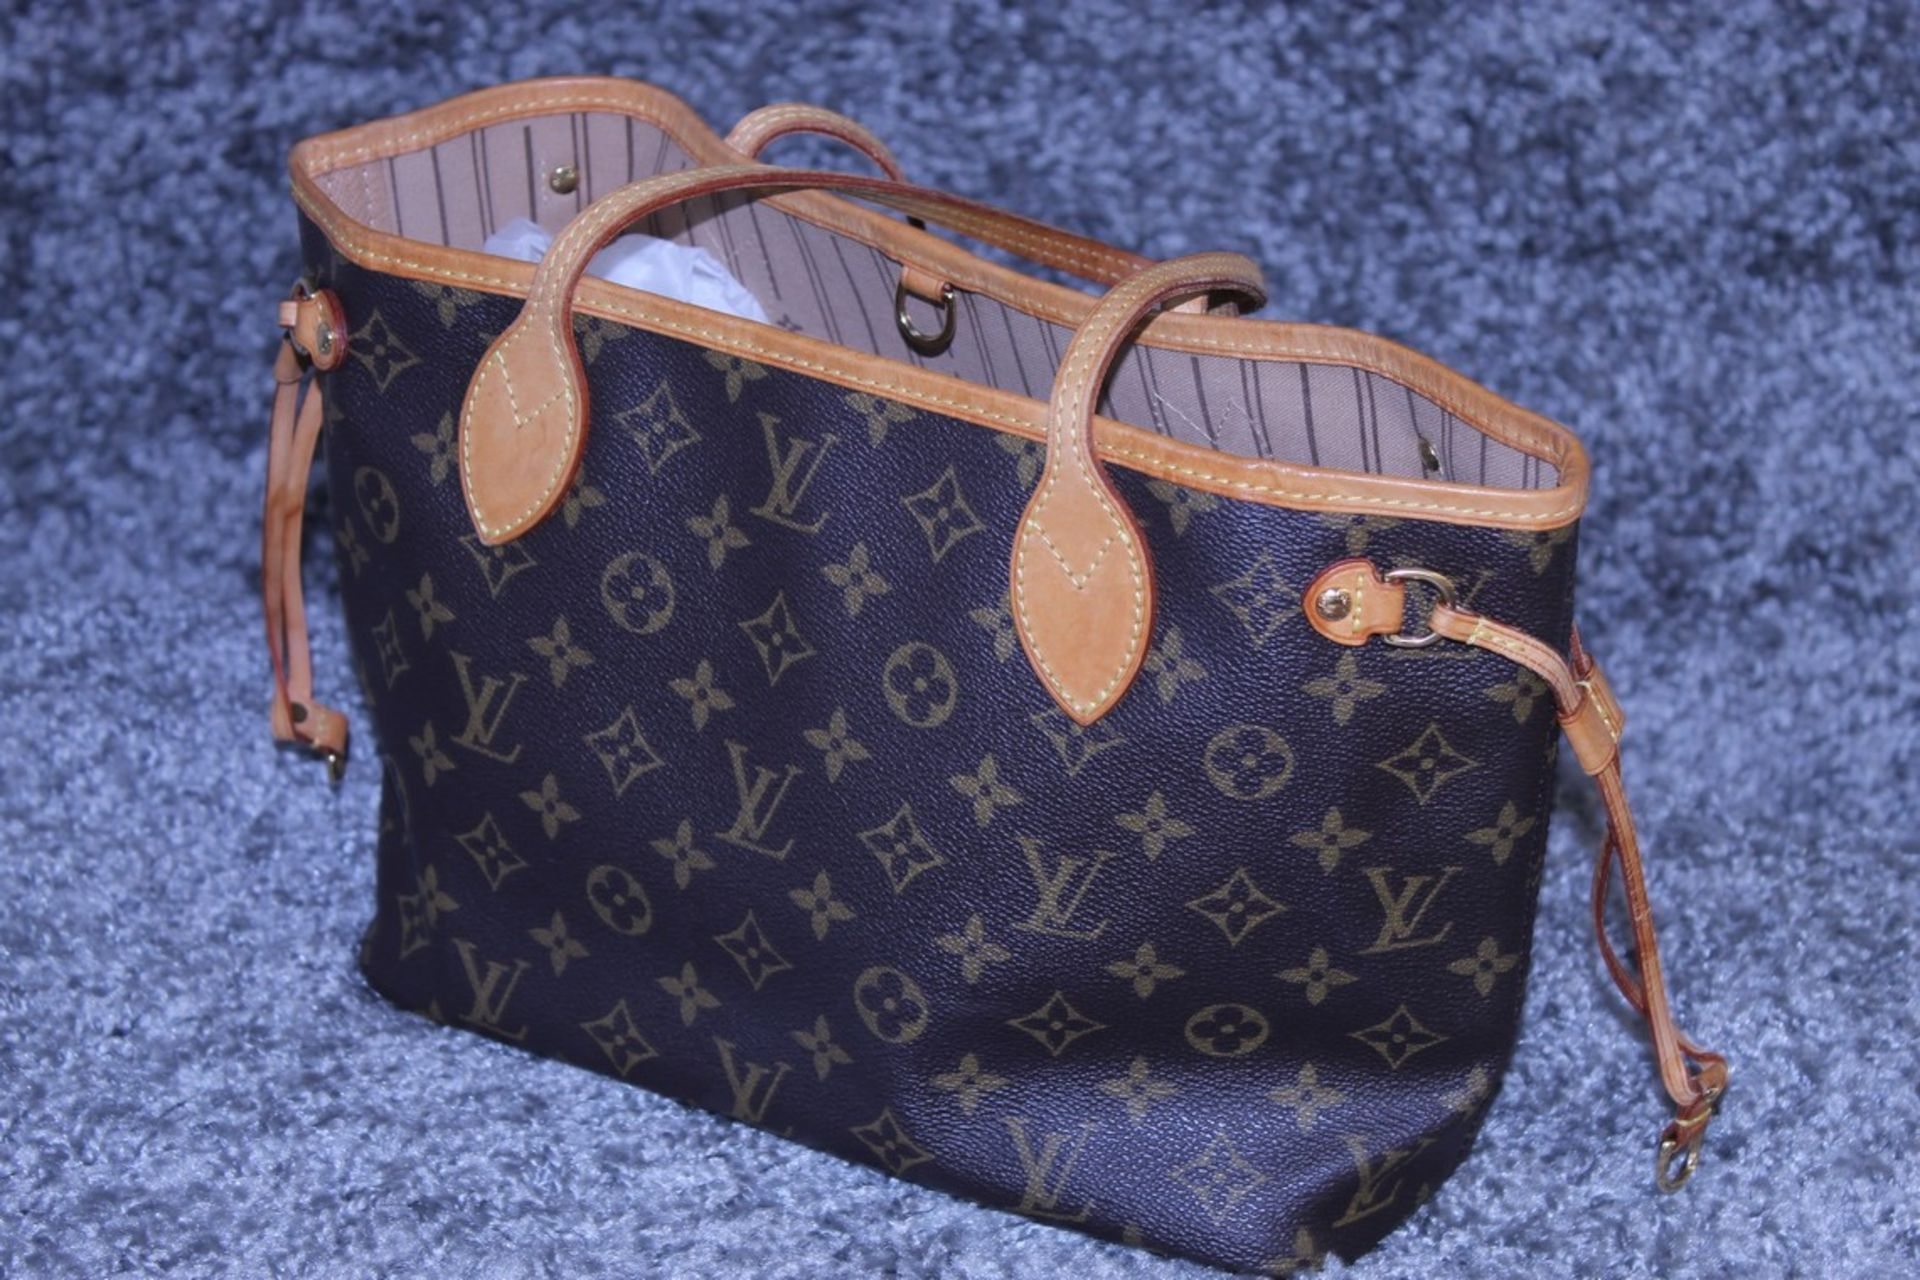 RRP £1500 Louis Vuitton Neverfull Handbag In Brown Coated Monogram Canvas With Vachetta Handle ( - Image 3 of 3